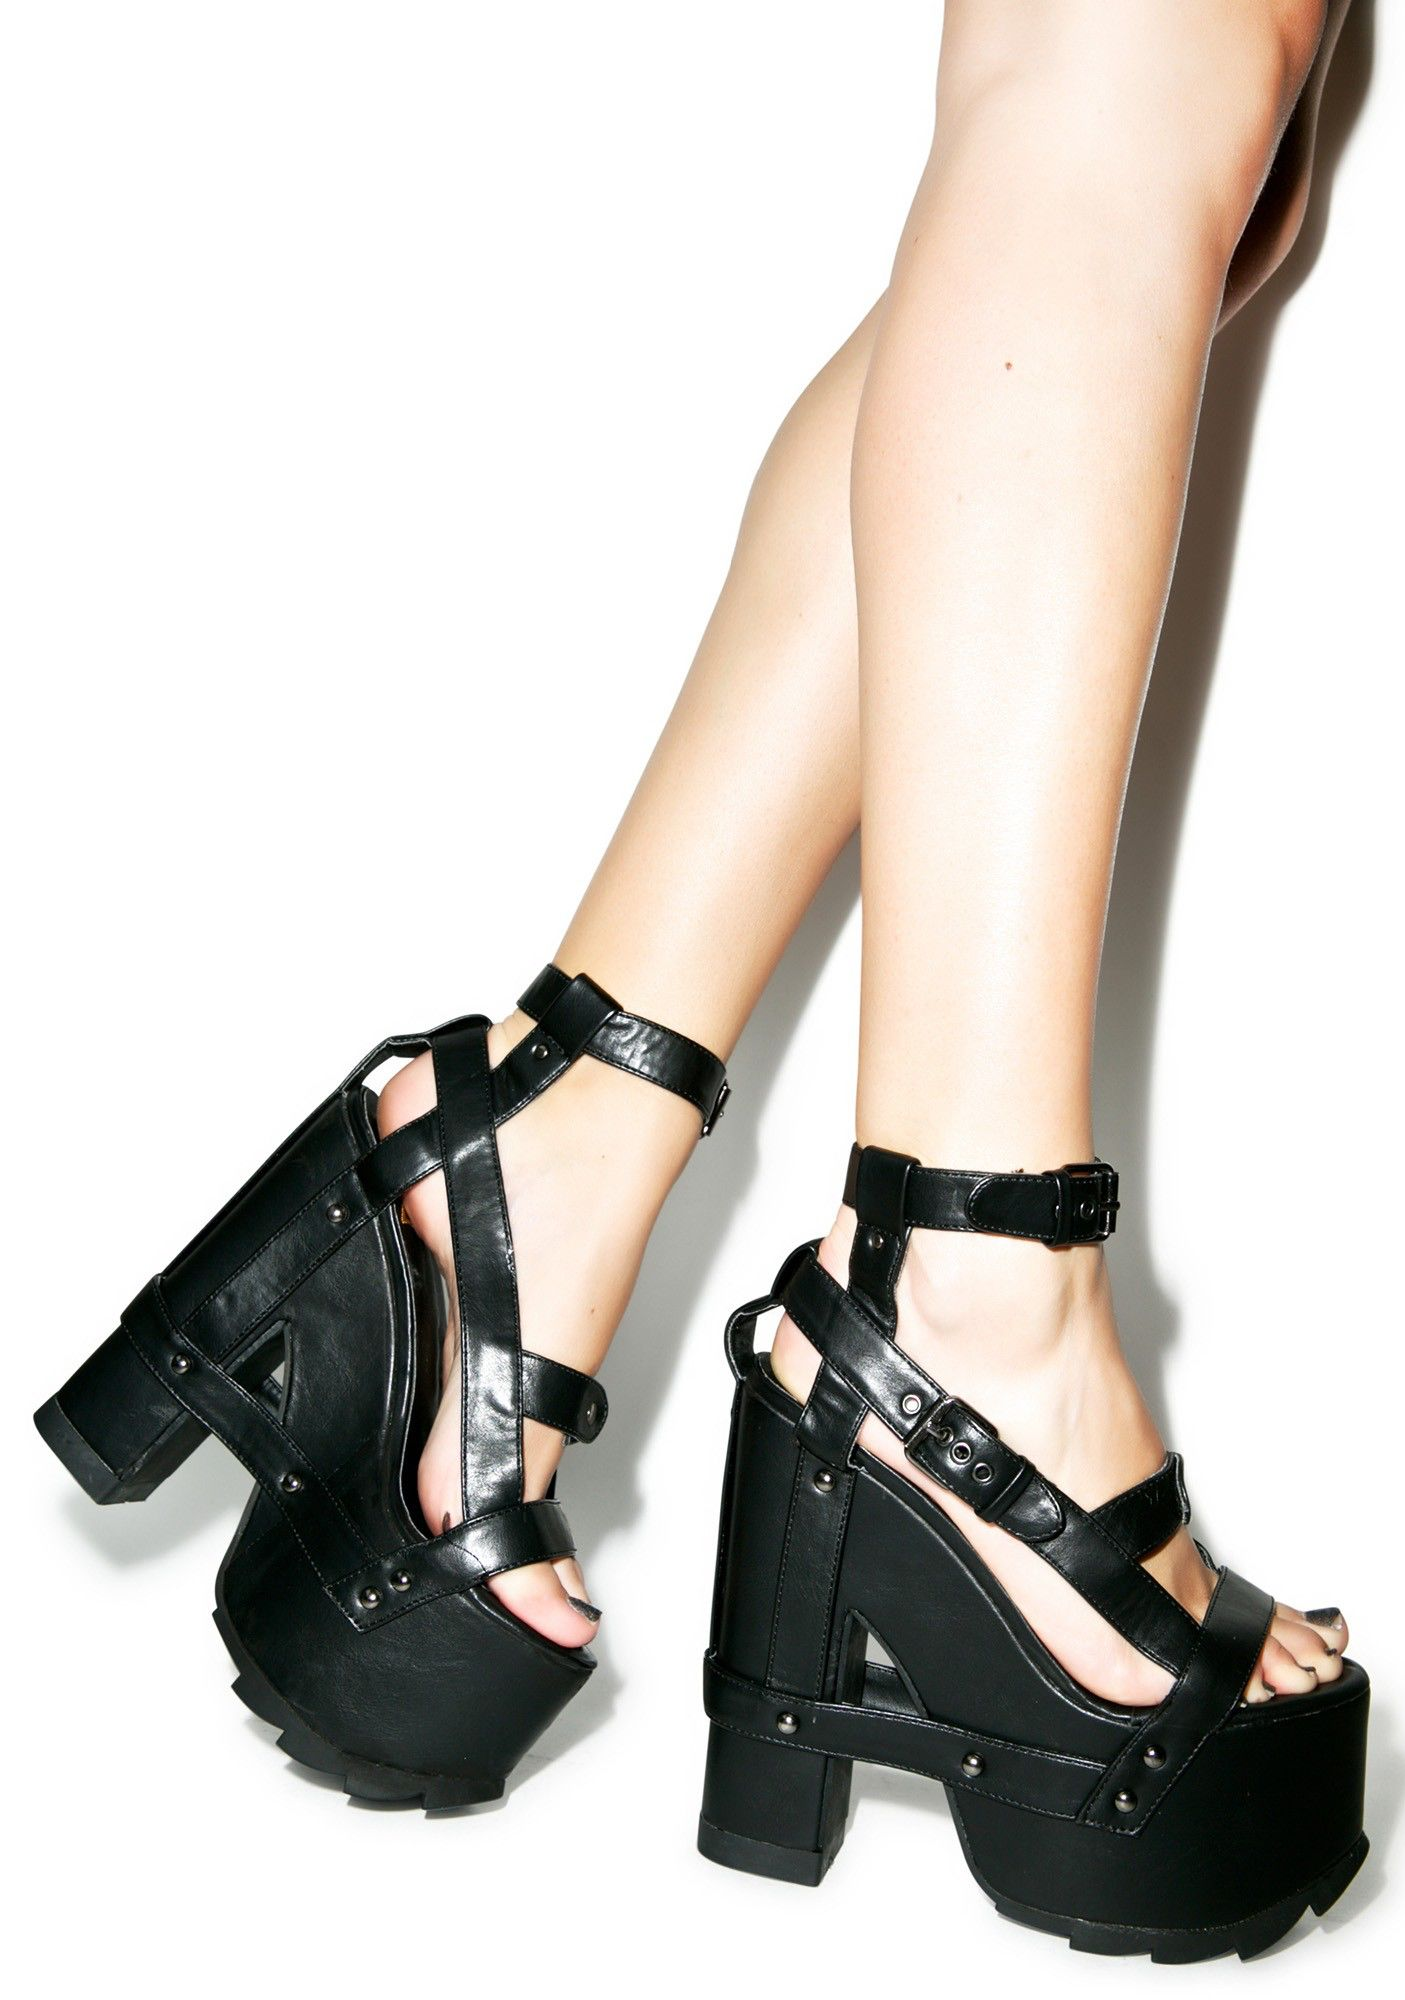 ☽•ᏗᎥᎷᏋᏋ•☾ Y.R.U Nightcall Platform Heels | Dolls Kill